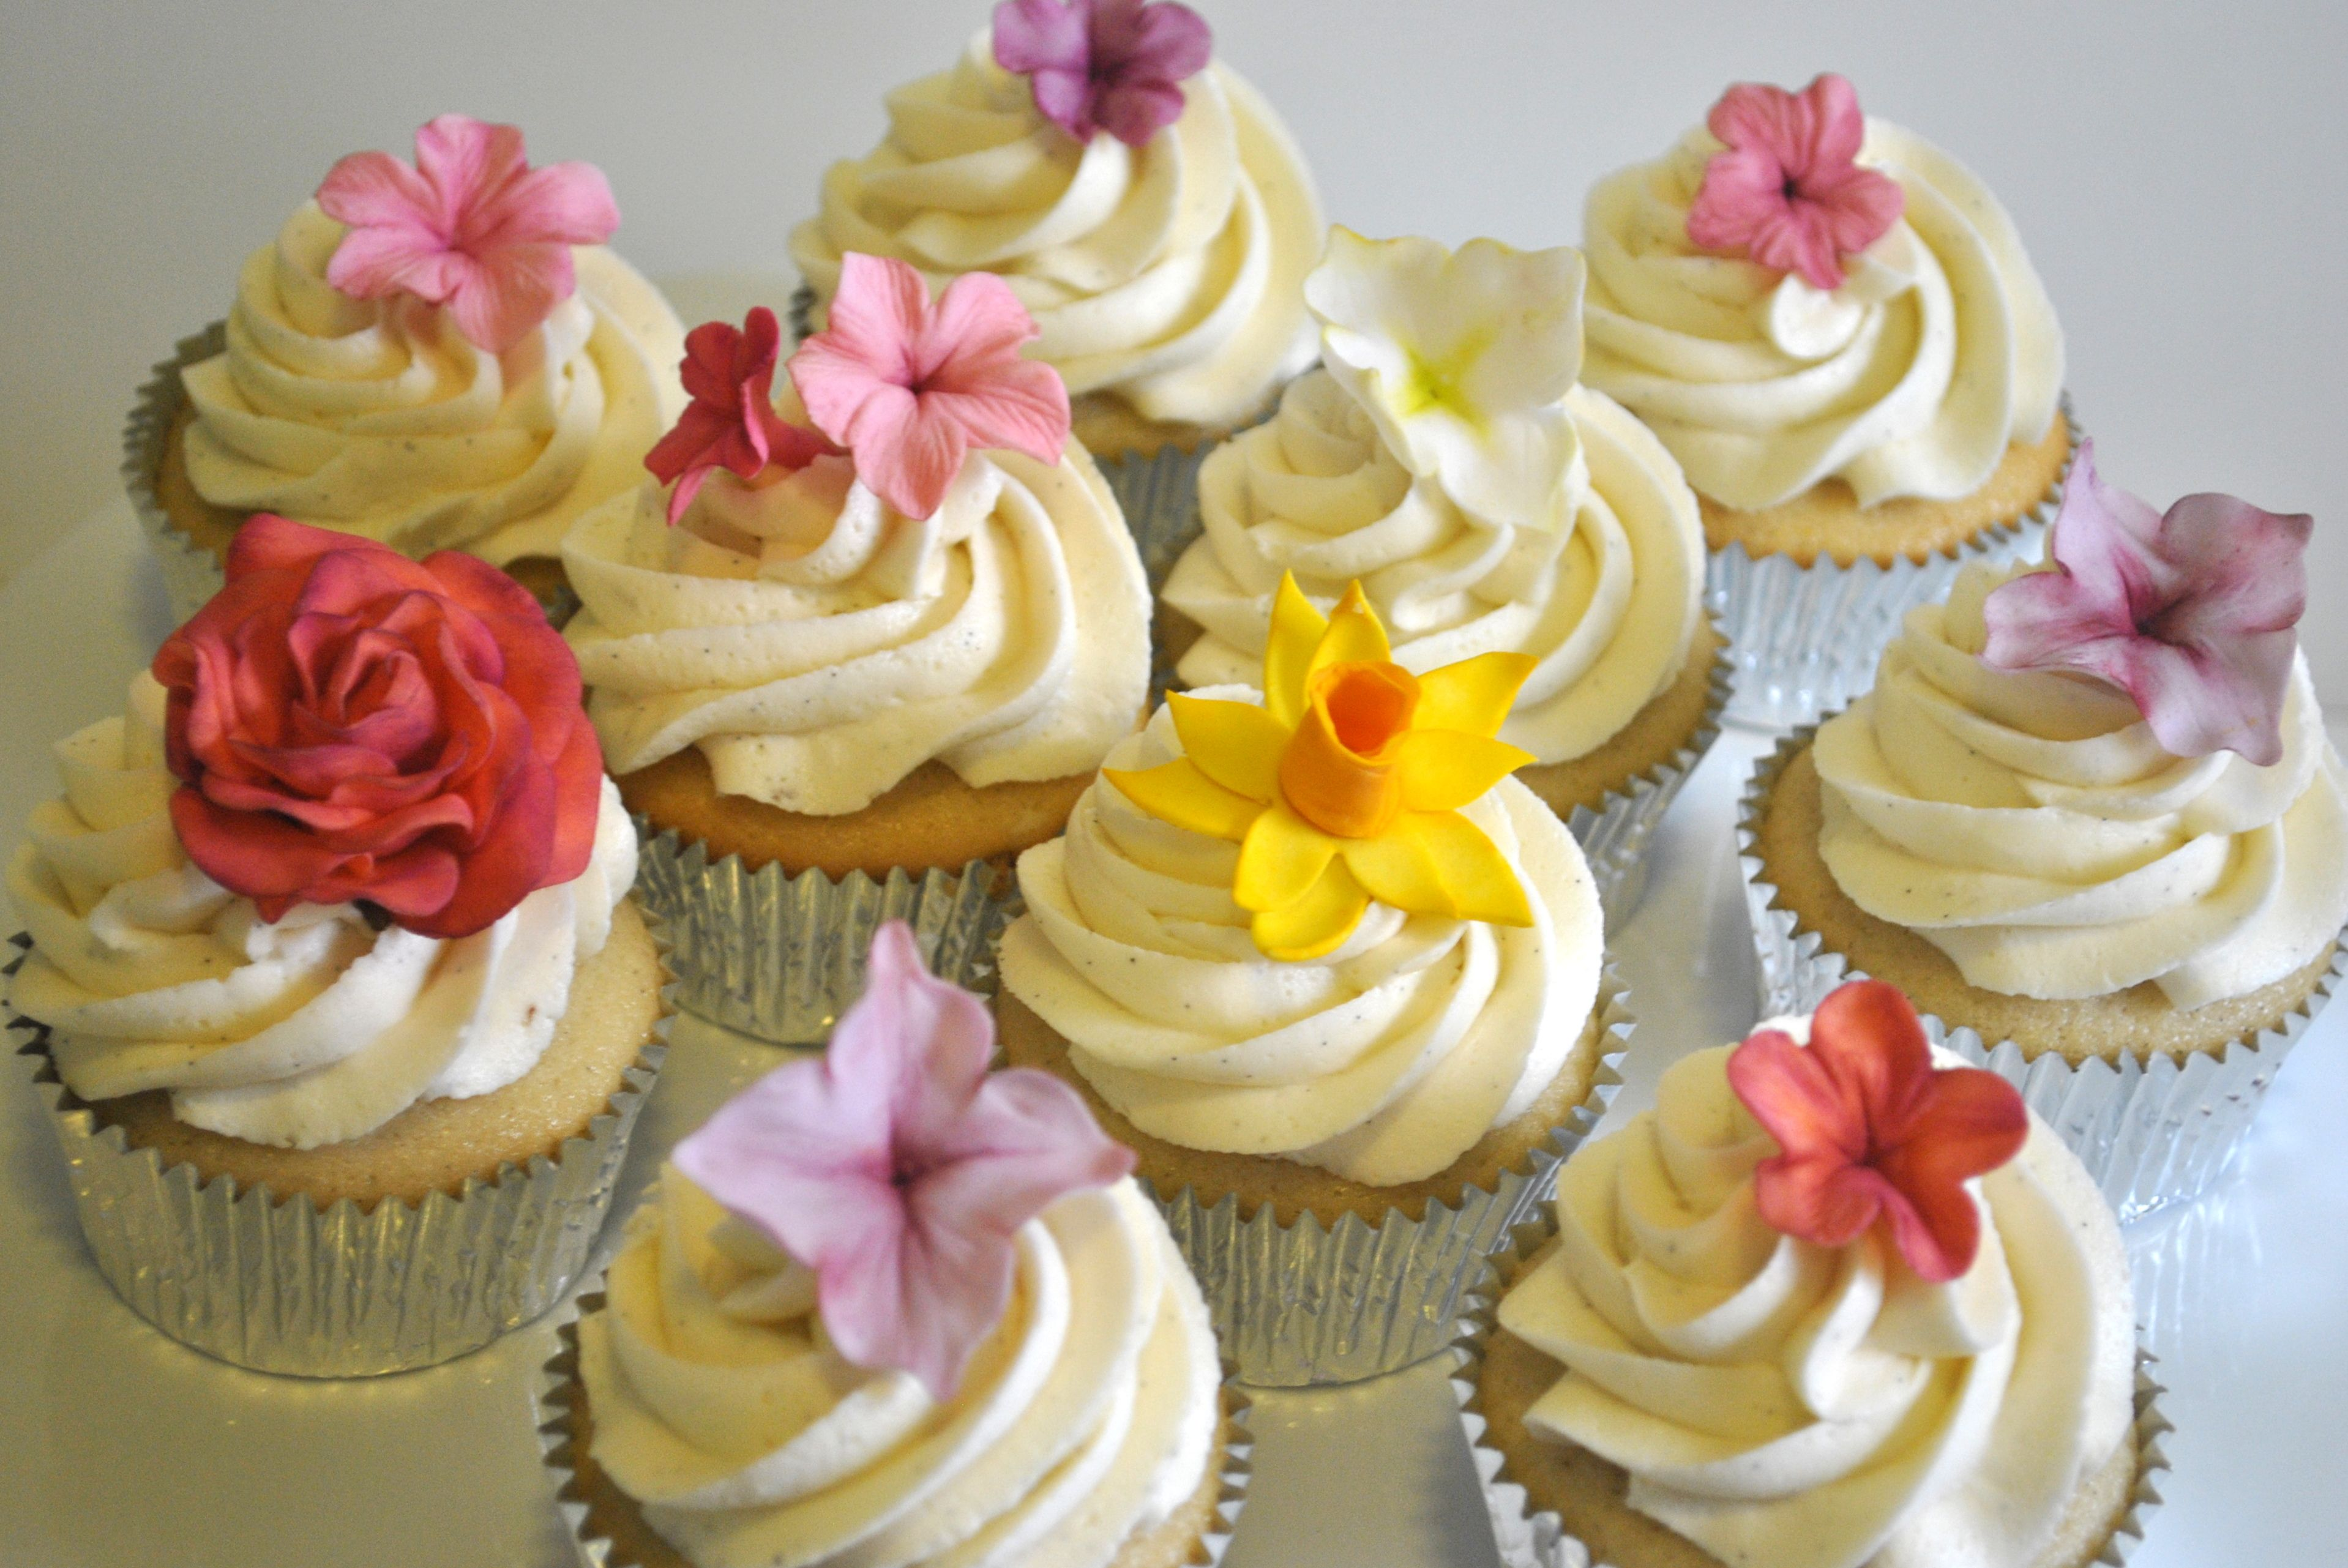 Sugar flower cupcakes Perfect for a girly baby shower